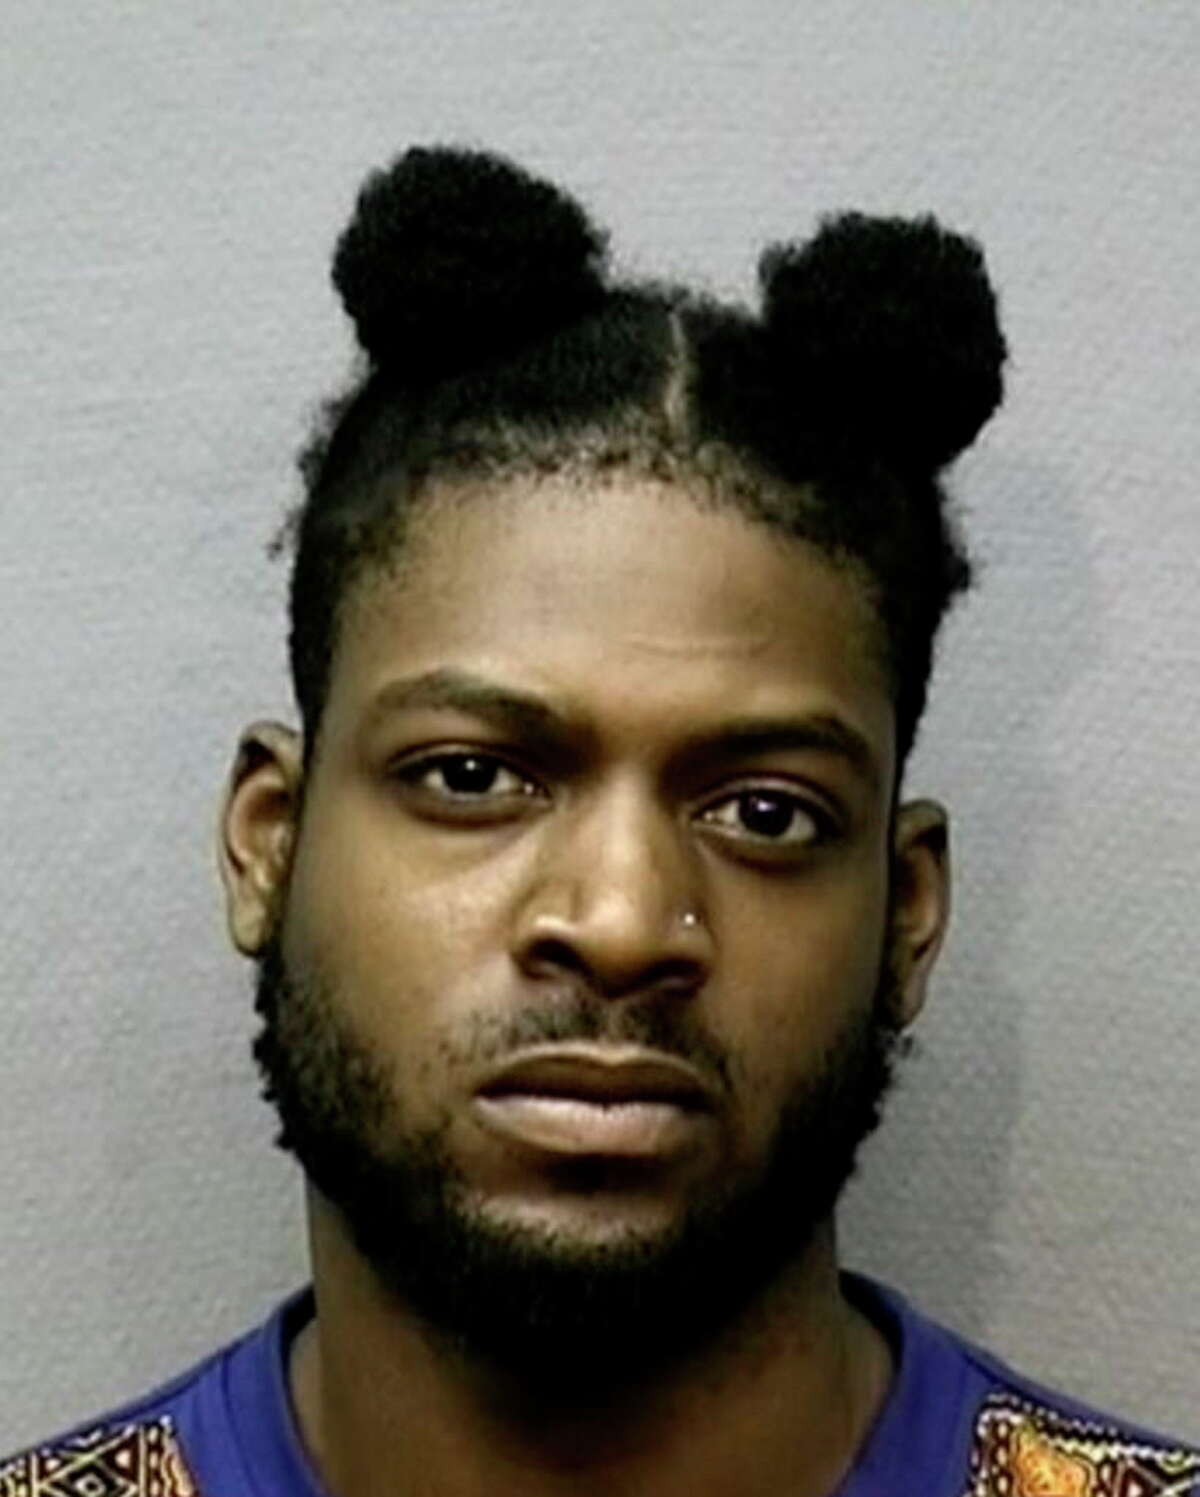 This undated photo provided by the Houston Police Department shows Jared Balogun. On Tuesday, June 20, 2017, police announced that Balogun has been charged with capital murder in the fatal shooting of a 10-month-old boy who was killed while his father was walking him outside an apartment complex. (Houston Police Department via AP)